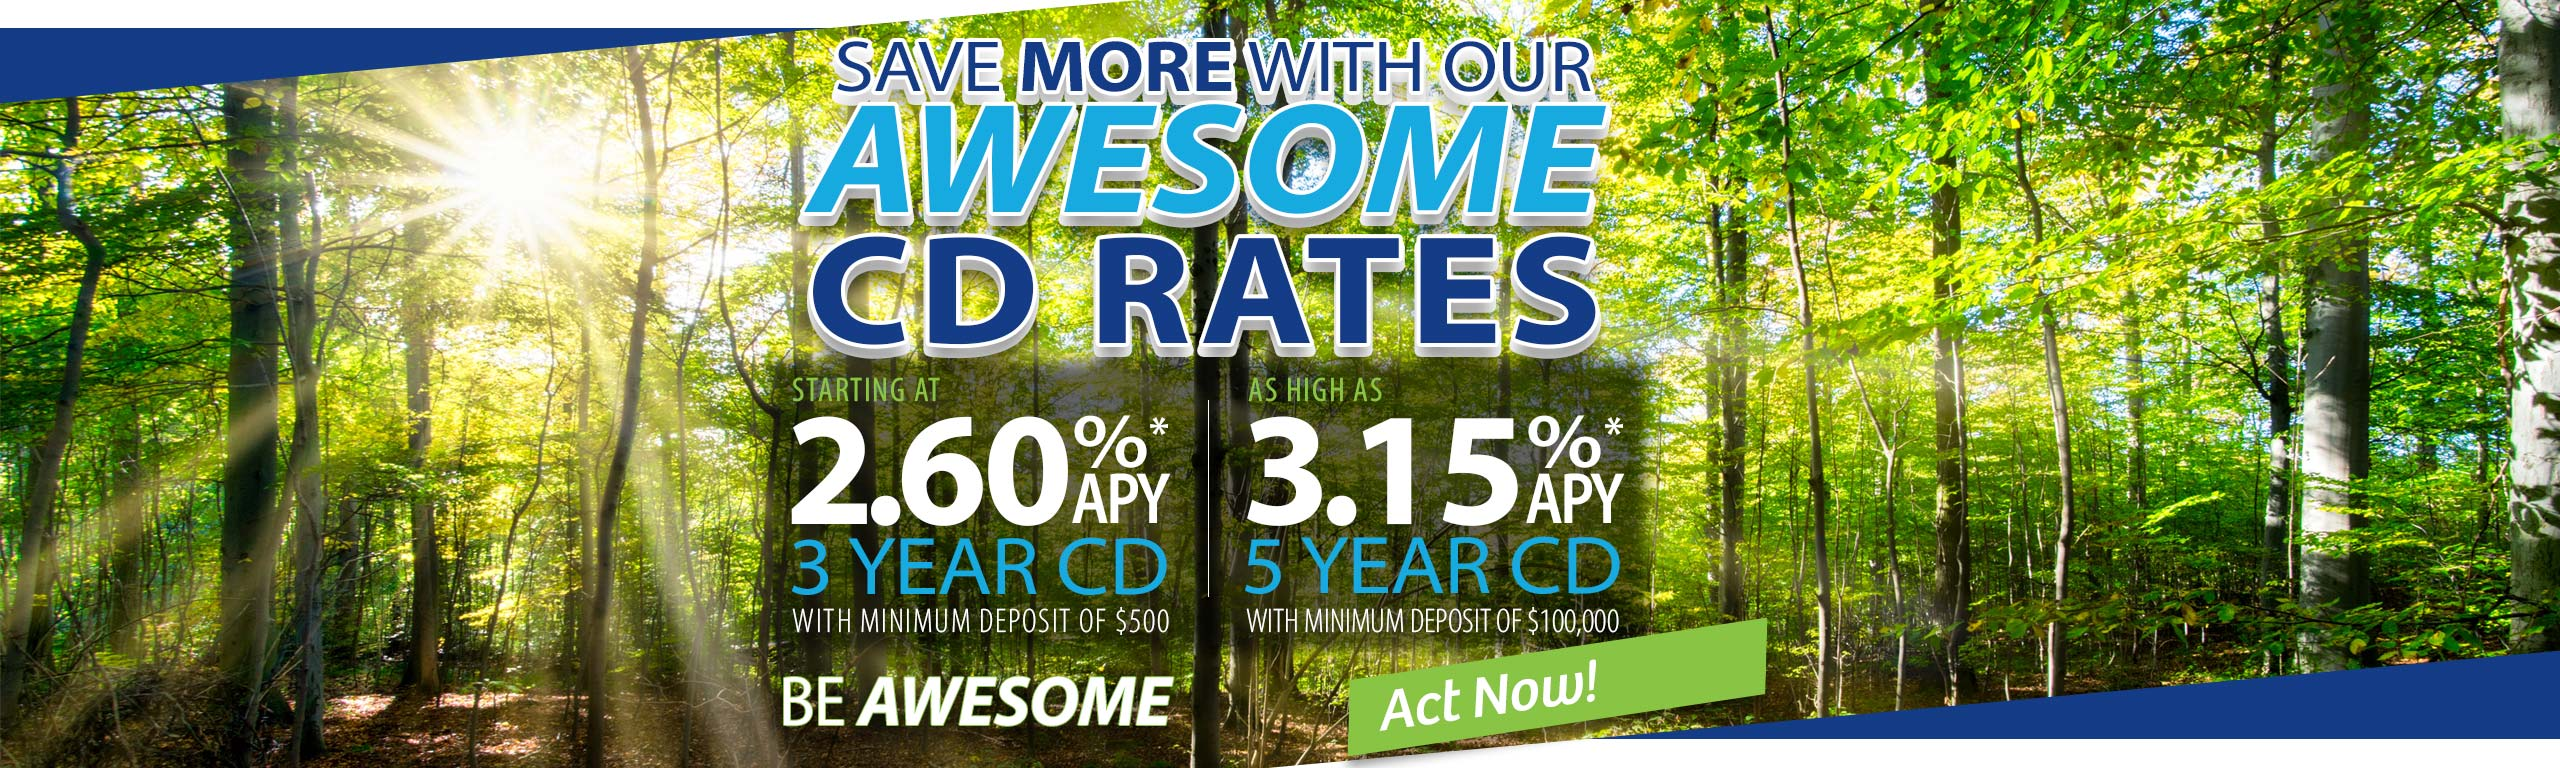 SAVE MORE WITH OUR AWESOME CD RATES